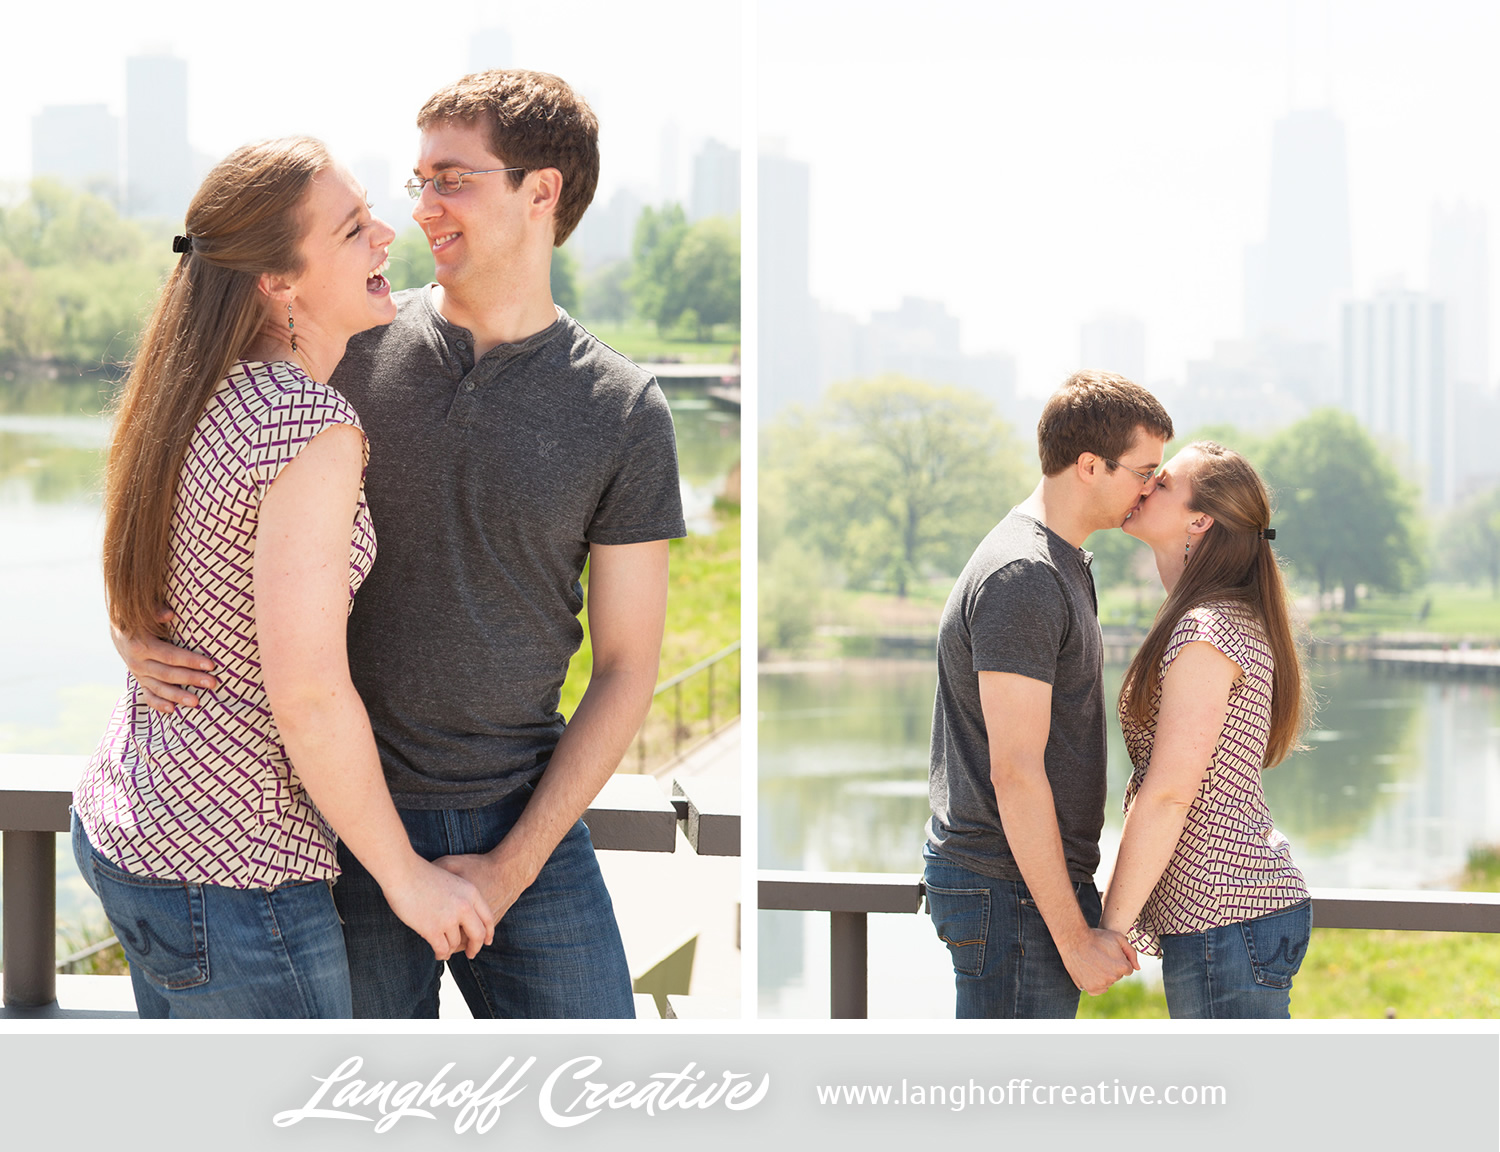 ChicagoEngagement-LincolnParkZoo-Engaged-LanghoffCreative-DestinationWeddingPhotographers-2014-ZacRachel-2-photo.jpg